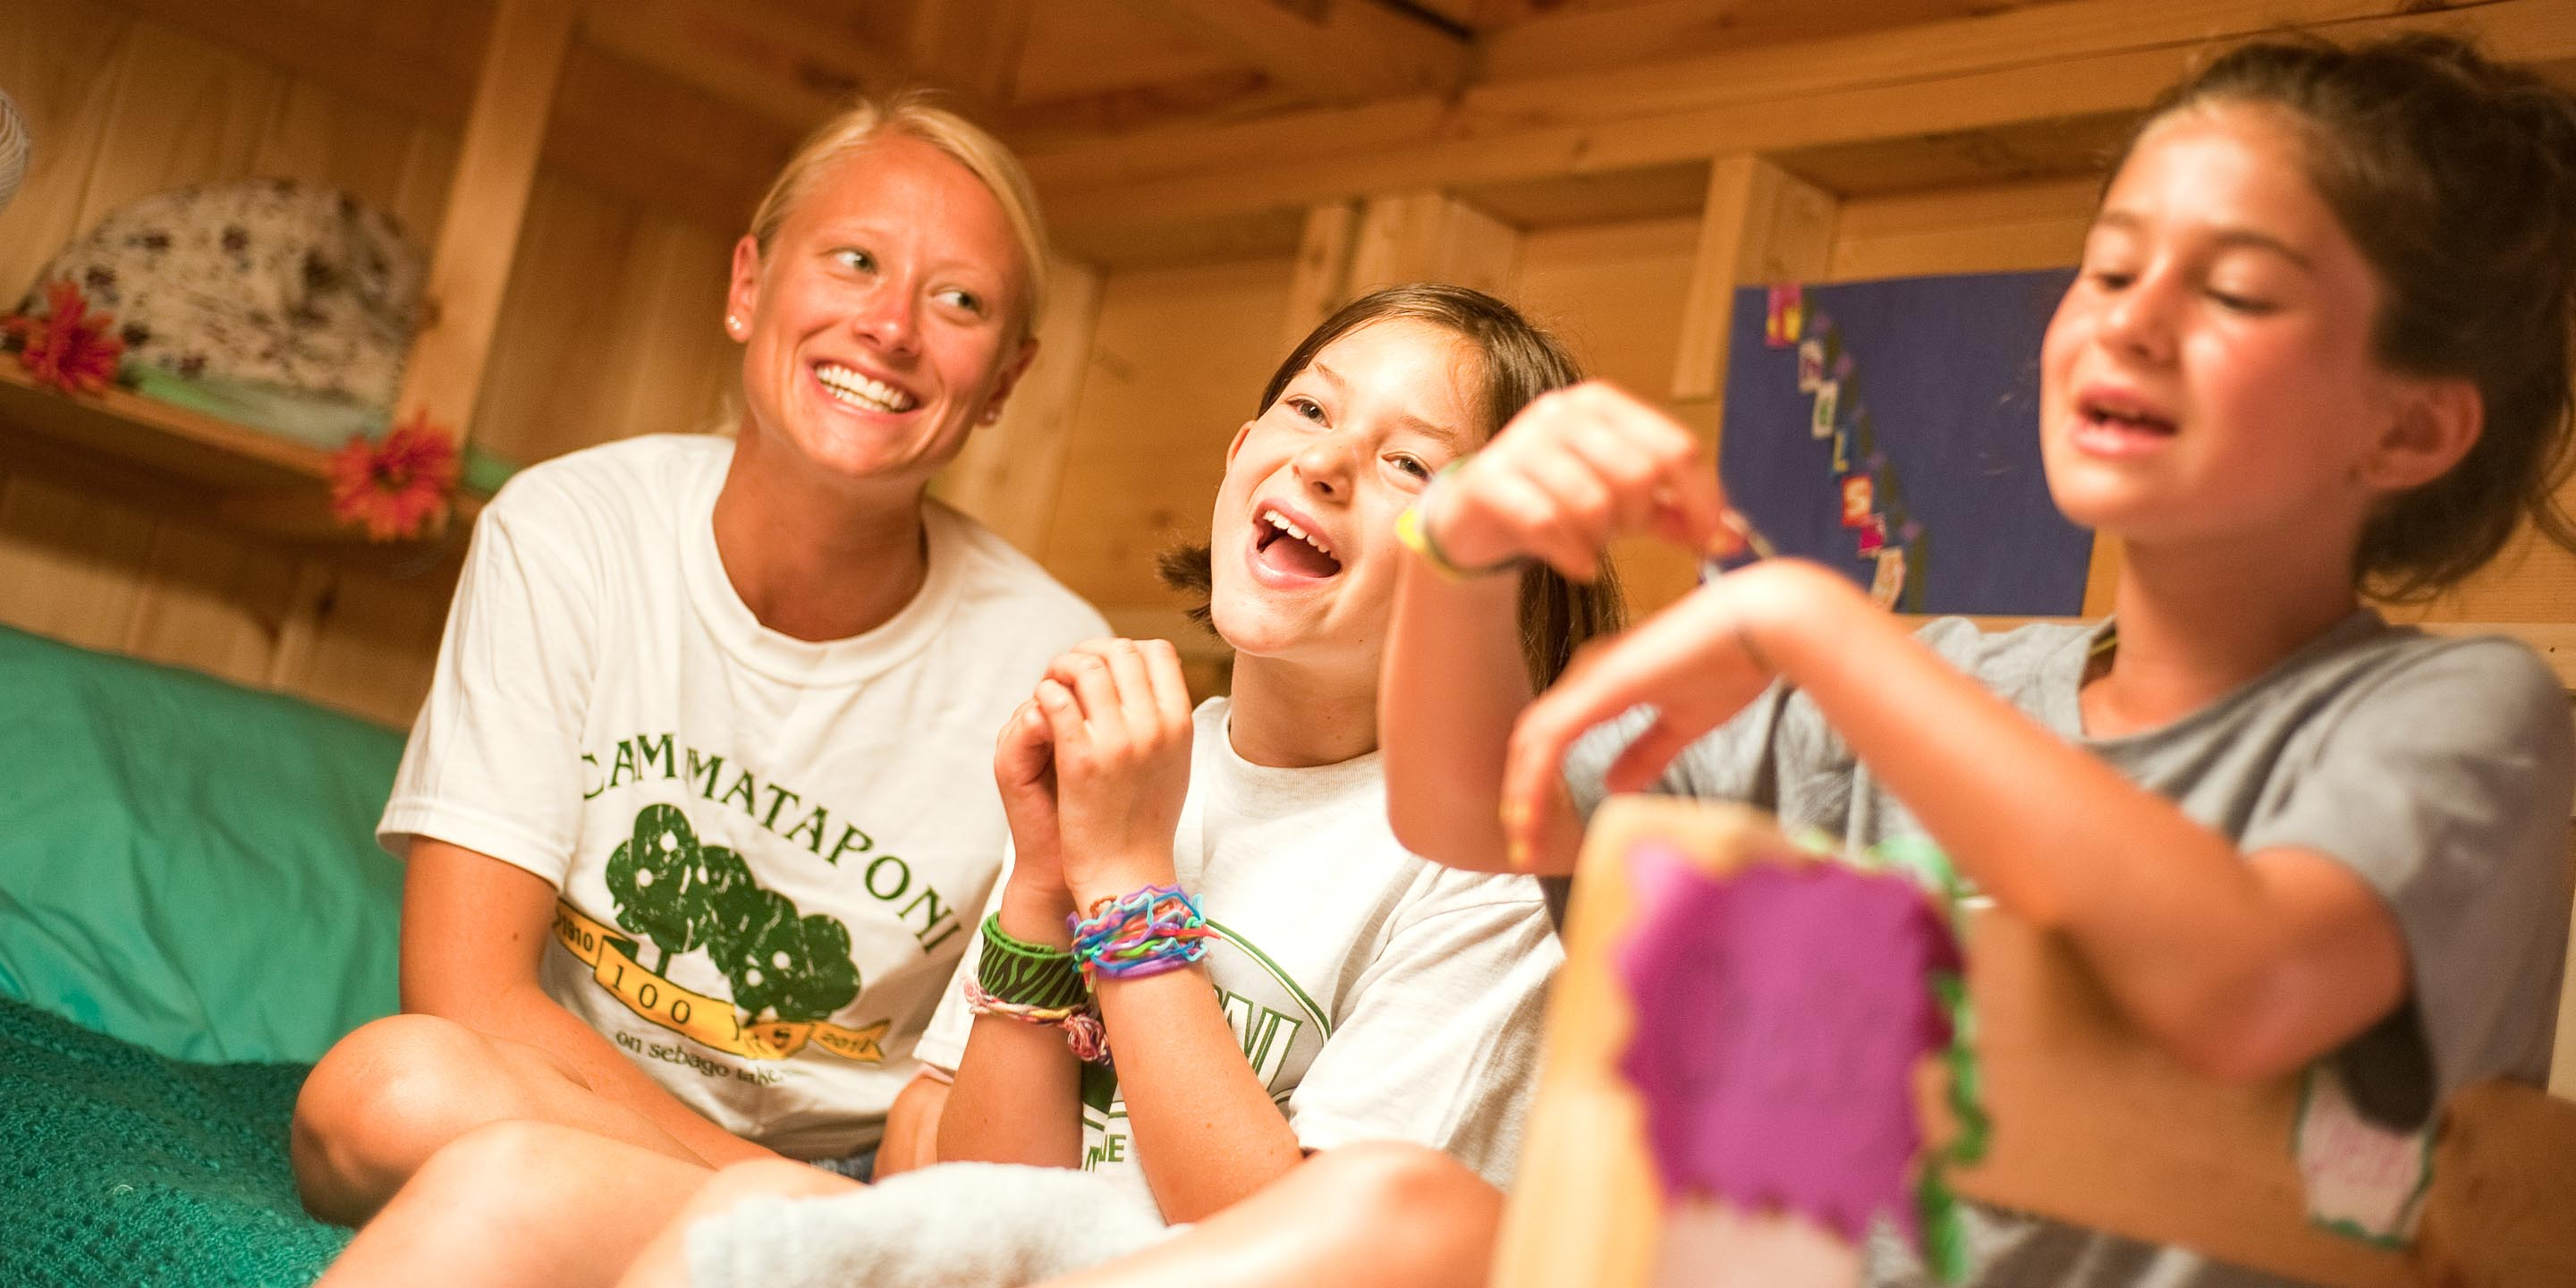 Counselor and campers laugh on camp bunk